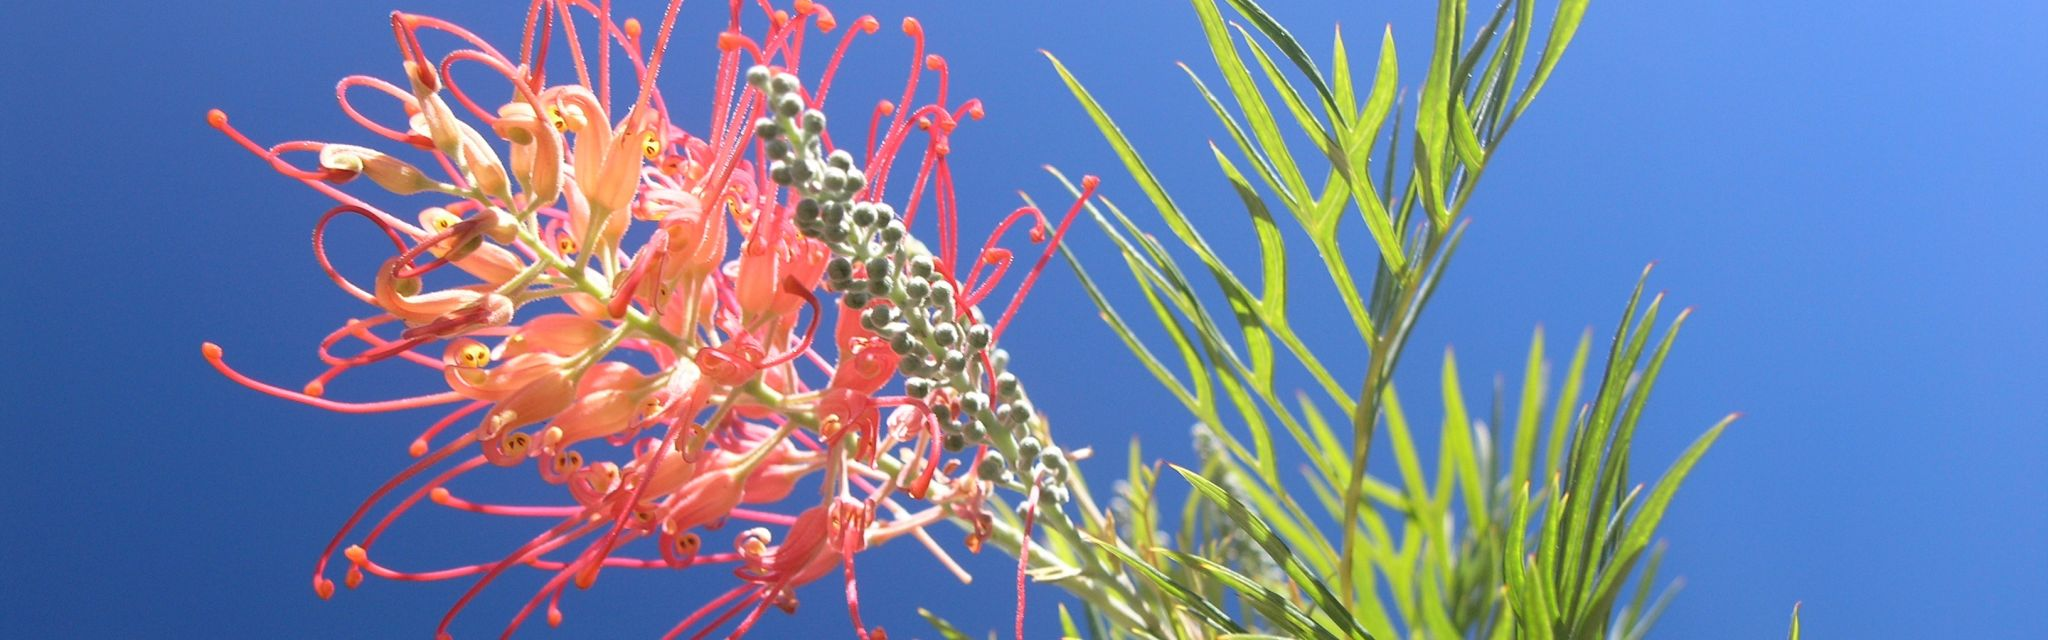 Red Grevillea unique flora in understanding about Australia